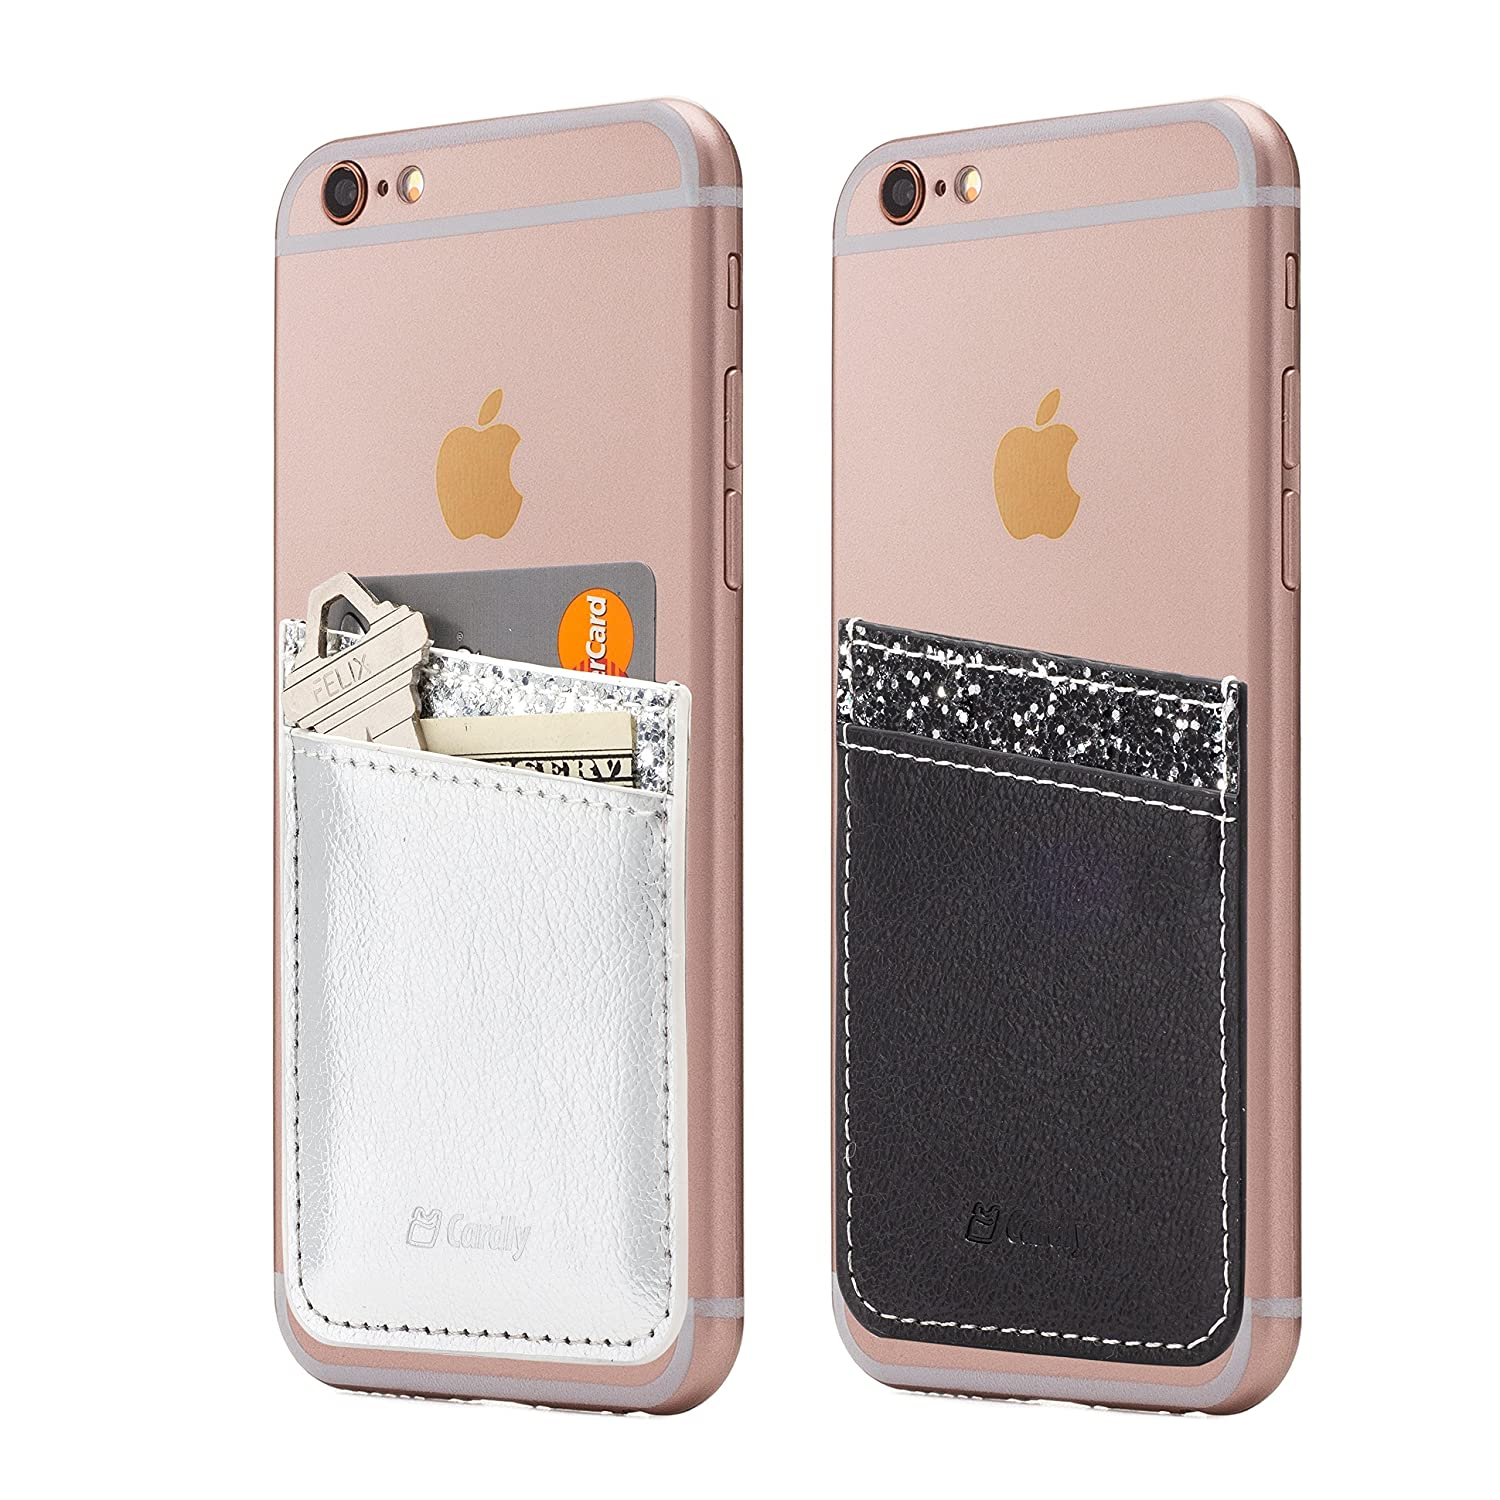 (Two) Cell Phone Stick On Wallet Card Holder Phone Pocket For iPhone, Android and all smartphones. (Silver&Black Foil) Cardly